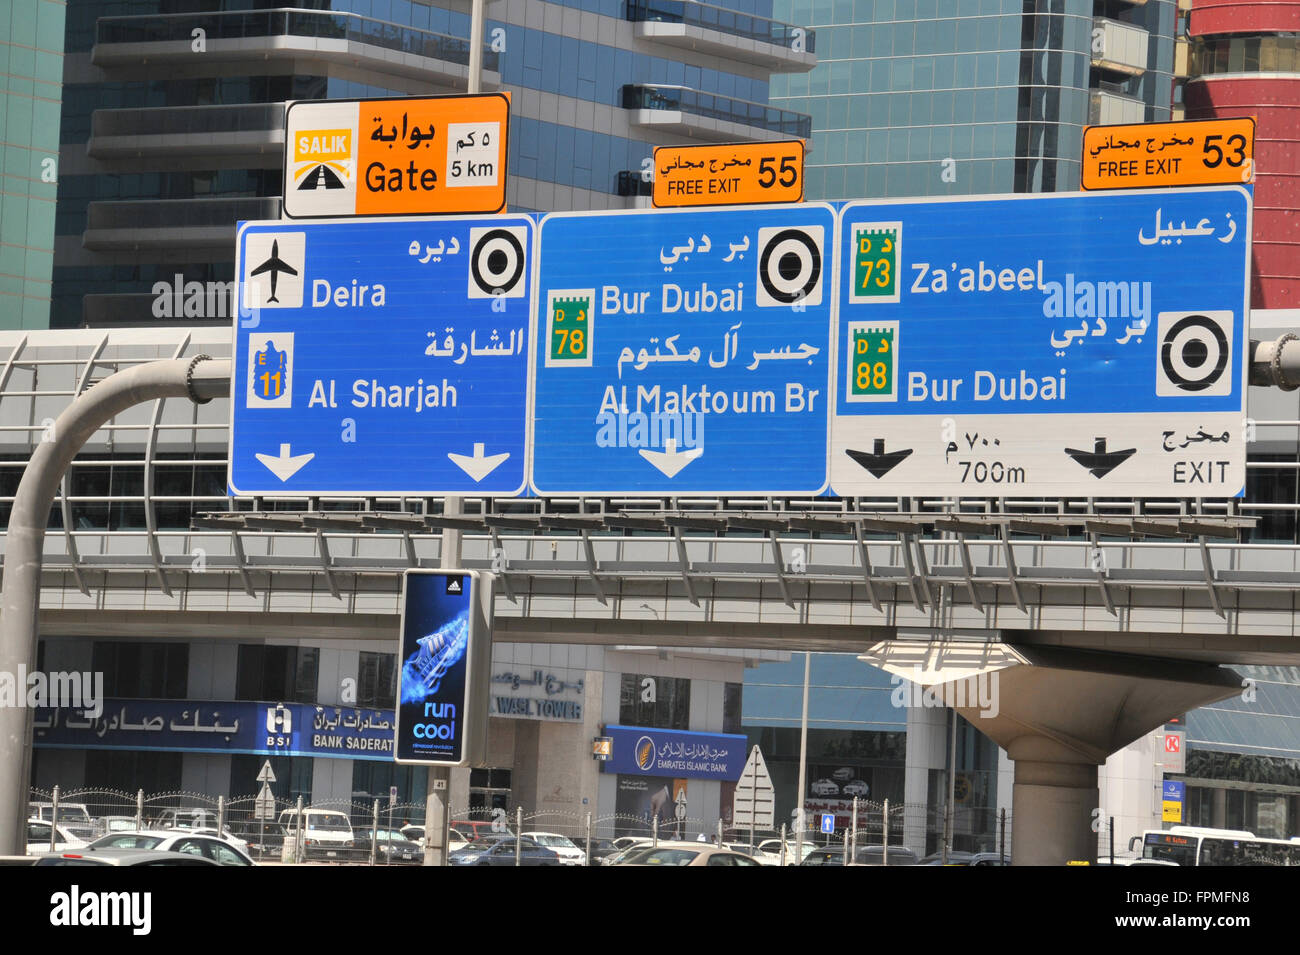 Road Signs For Sale >> road signs Dubai UAE Stock Photo - Alamy